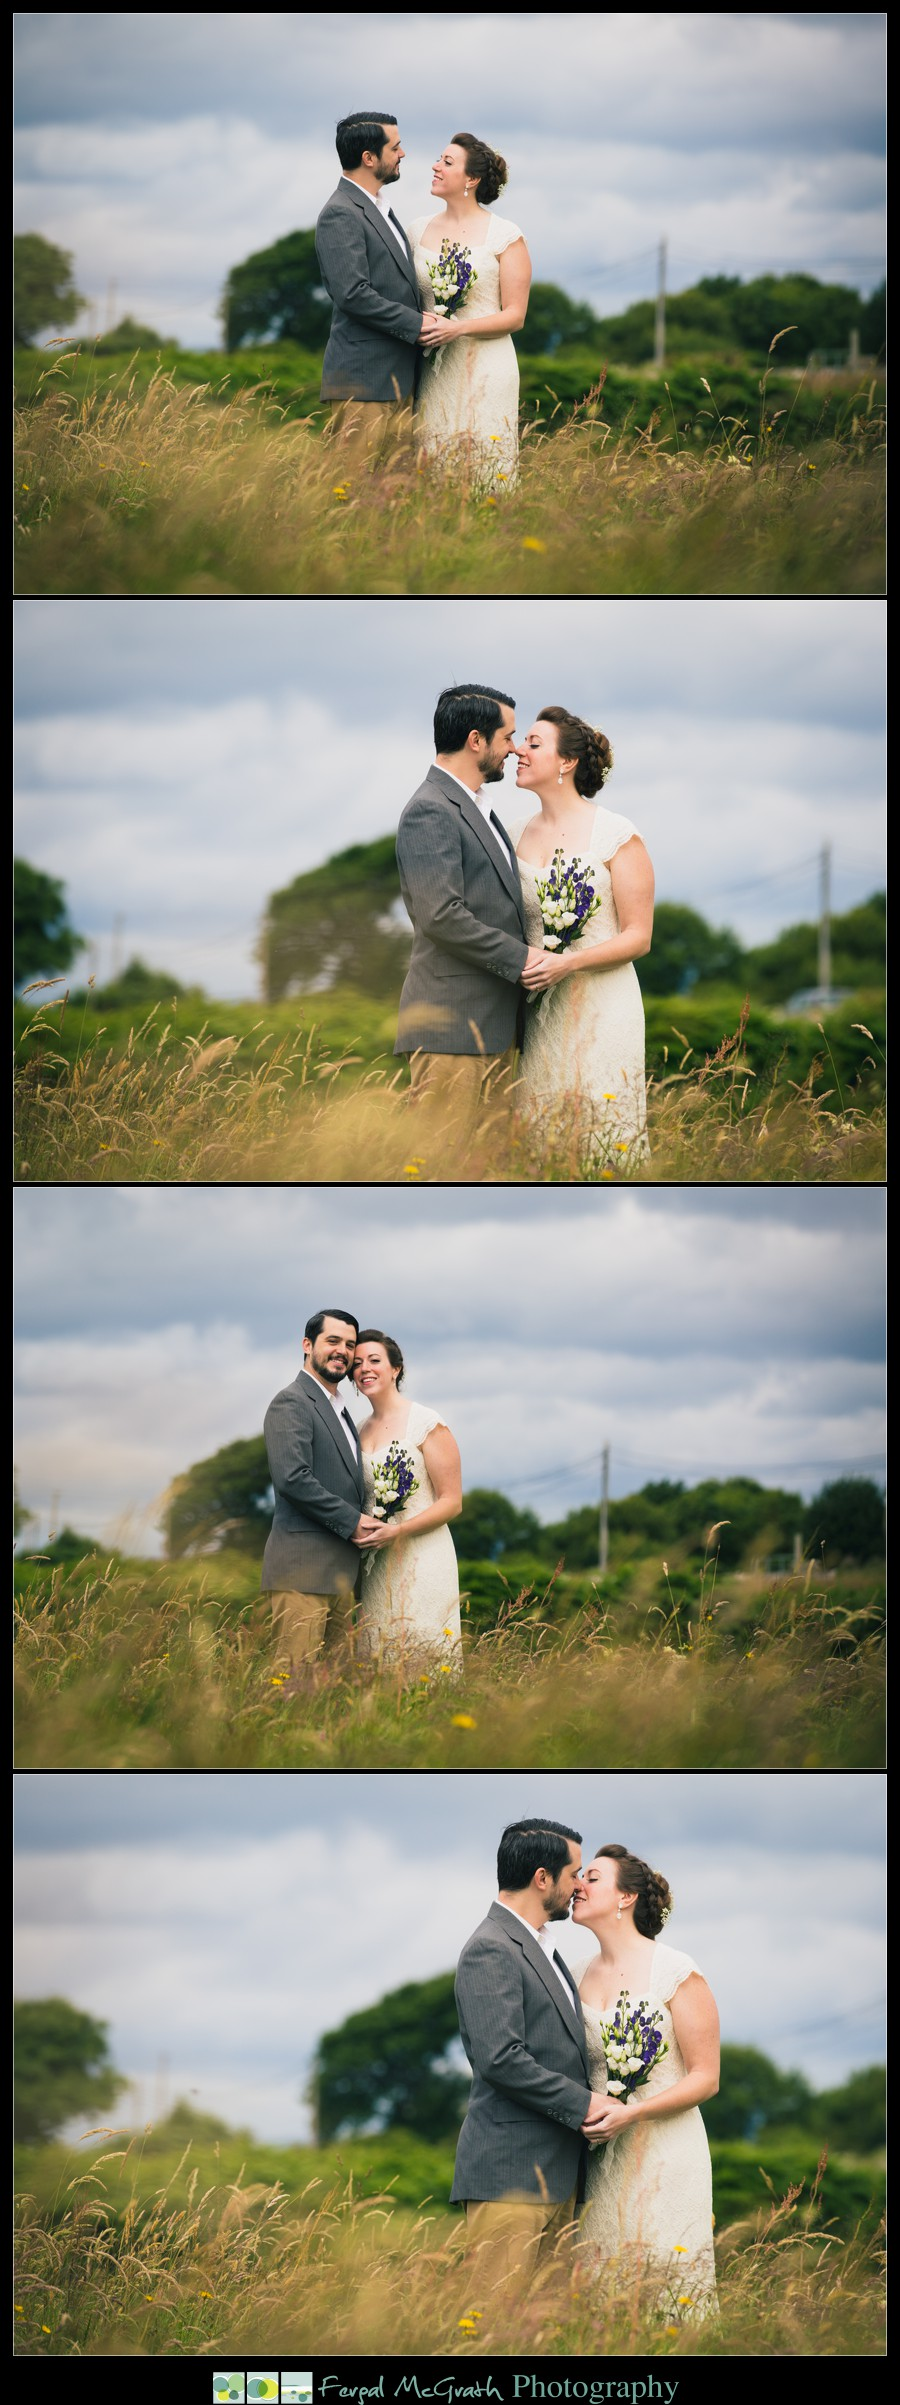 Donegal Wedding Photography bride and groom in a beautiful wild grass meadow in creevy pier